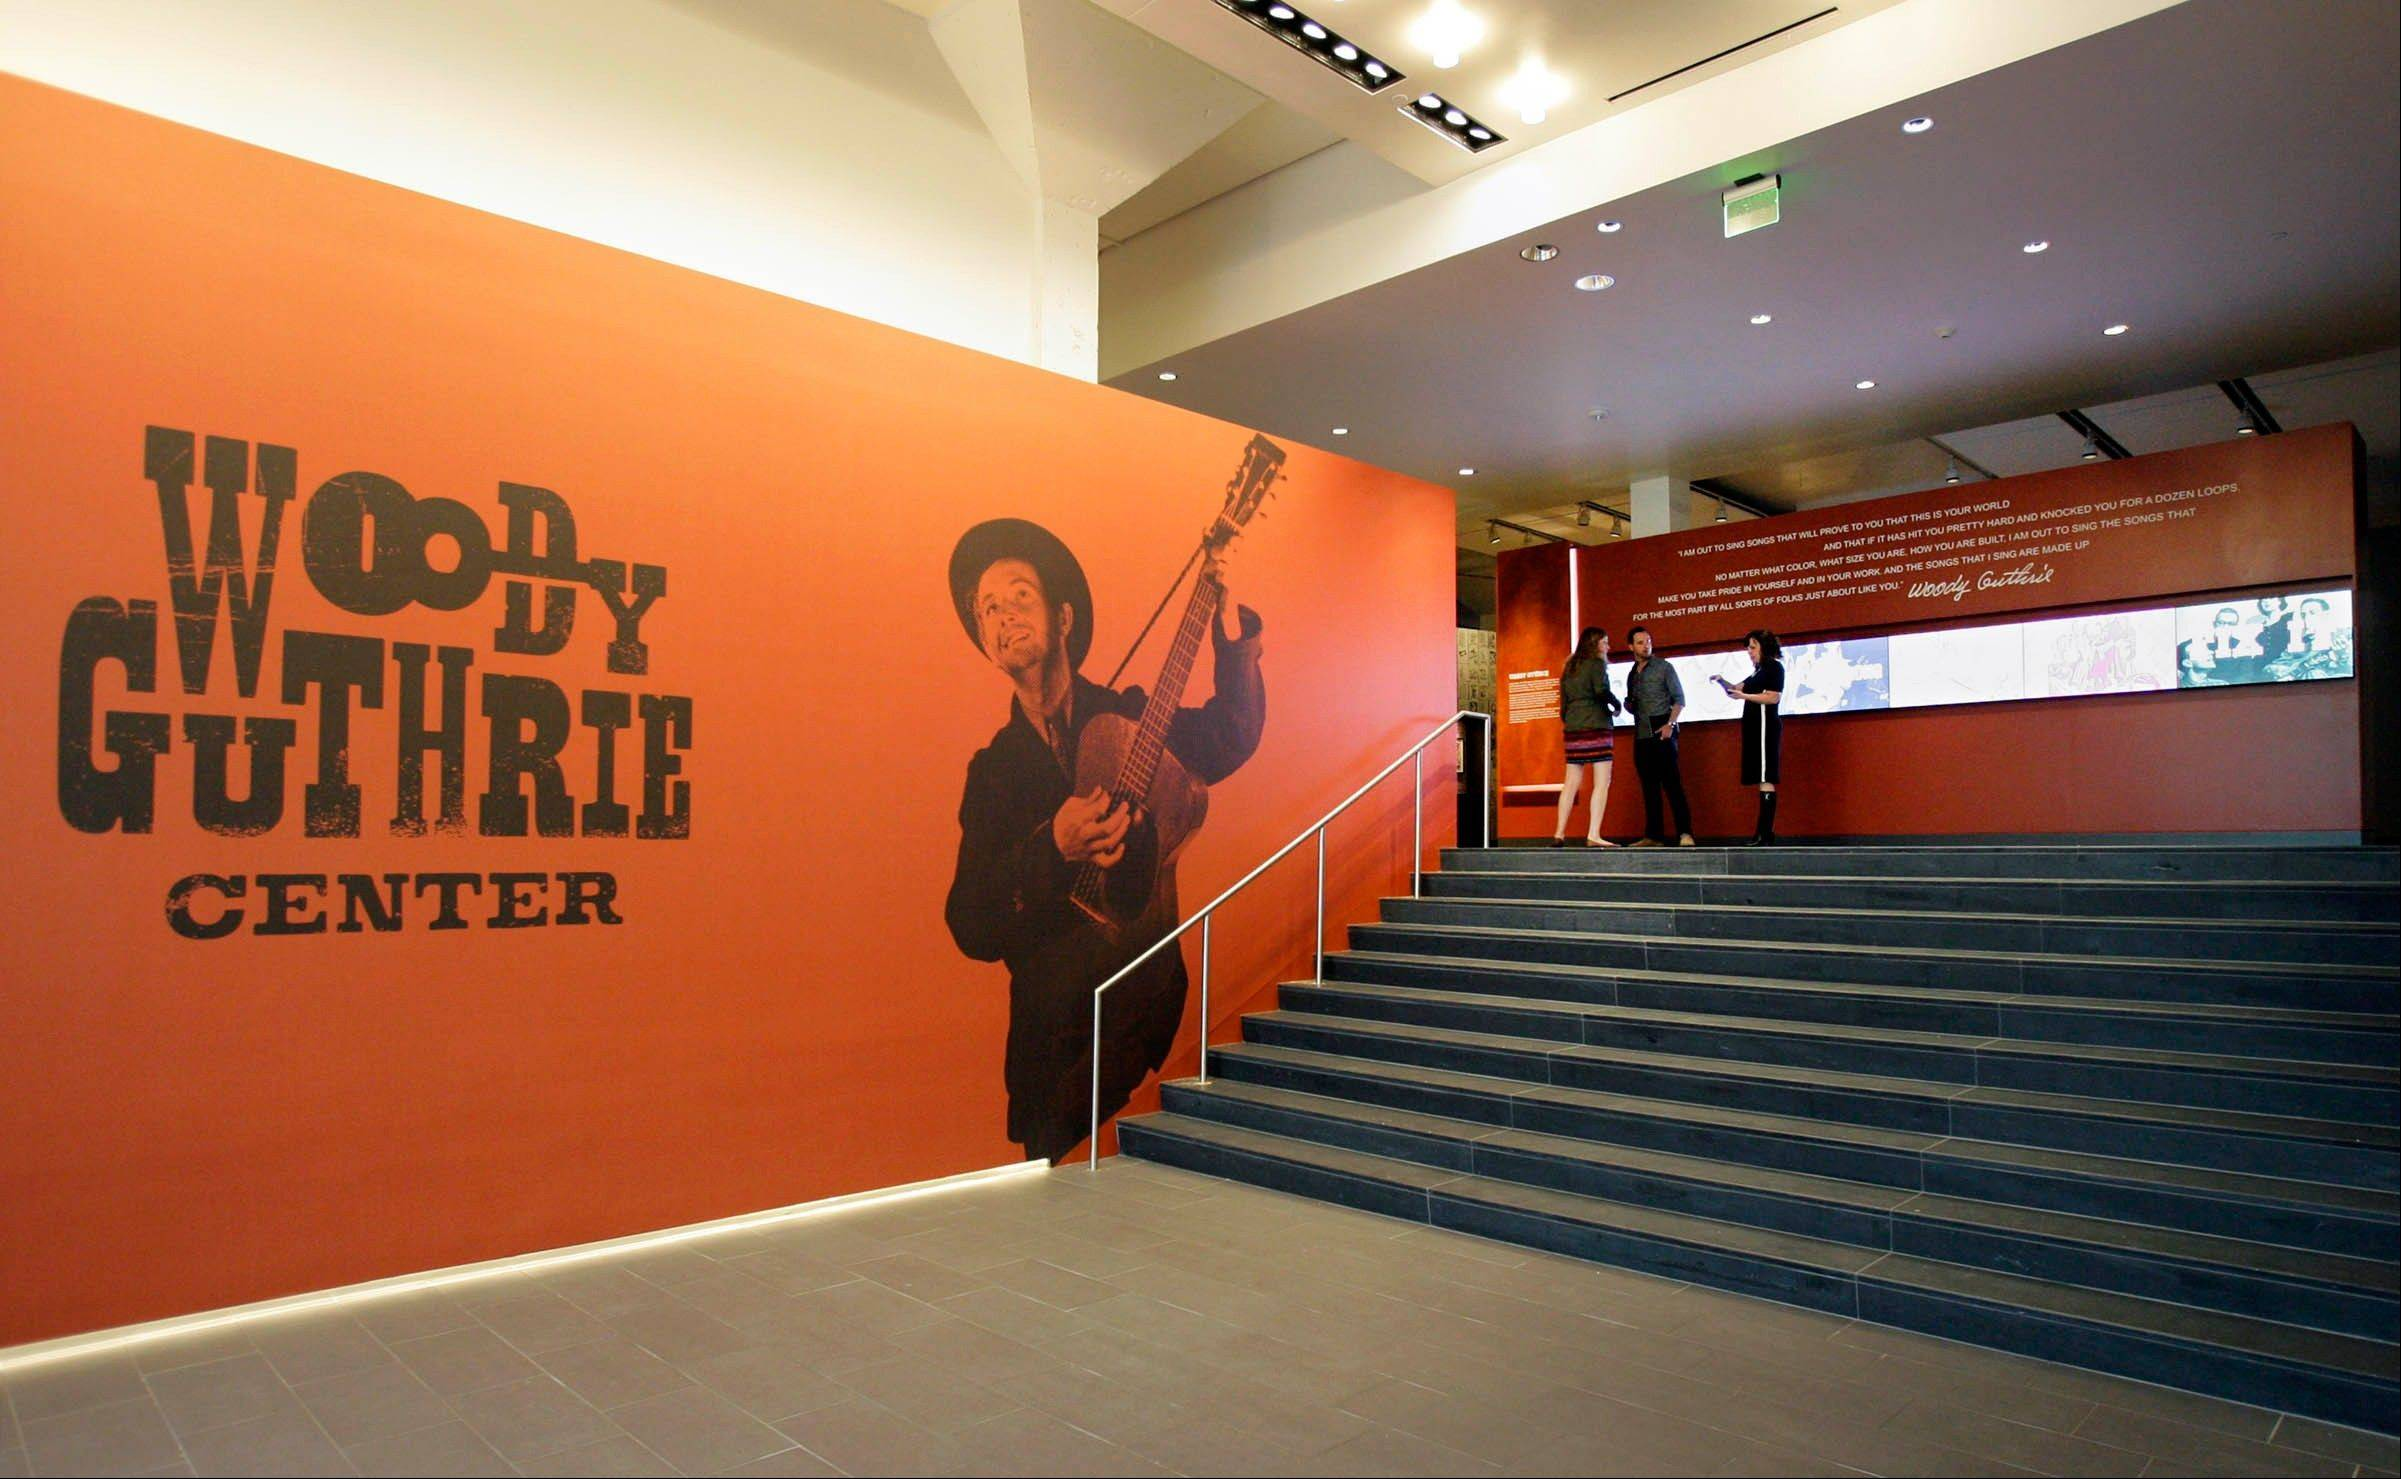 The main entrance lobby of the Woody Guthrie Center.